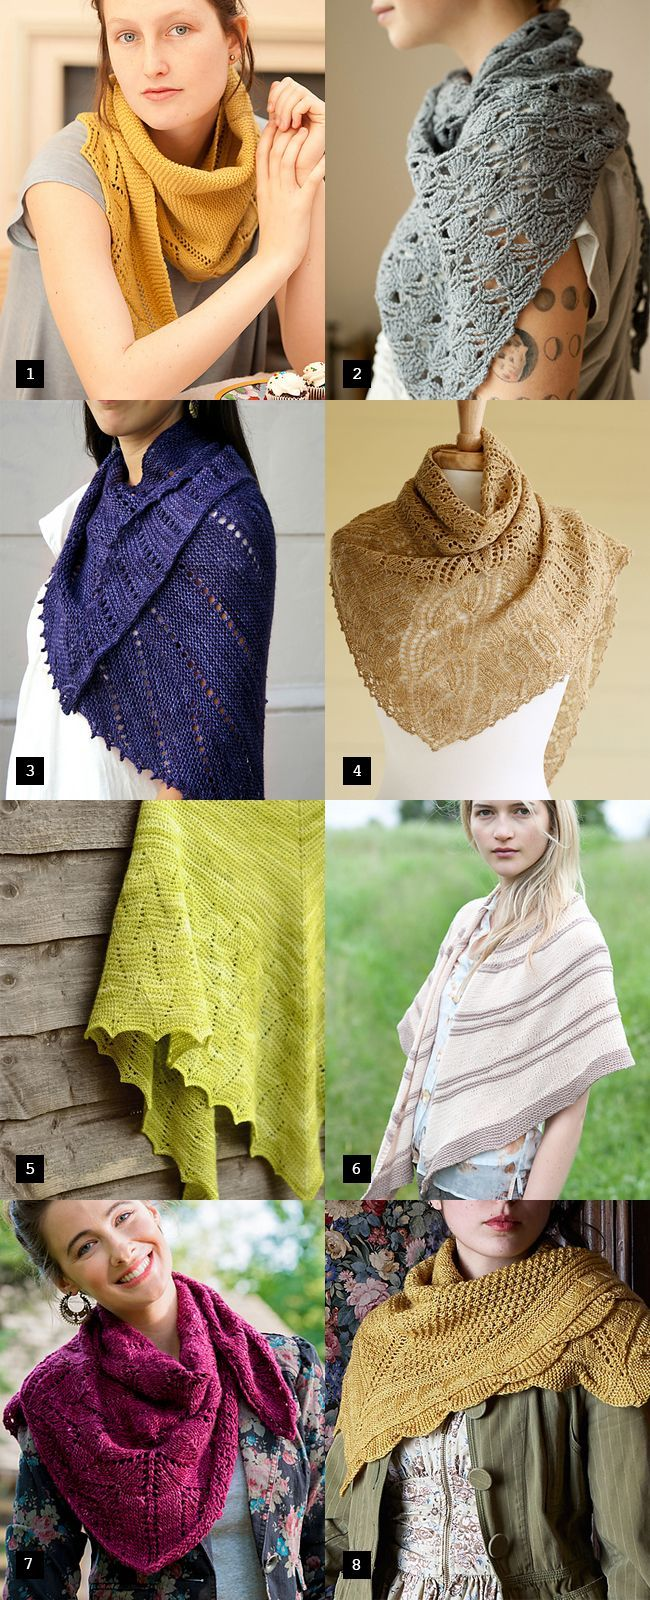 Debbie Macomber Knitting Patterns : Shawl, Debbie macomber and Spring on Pinterest